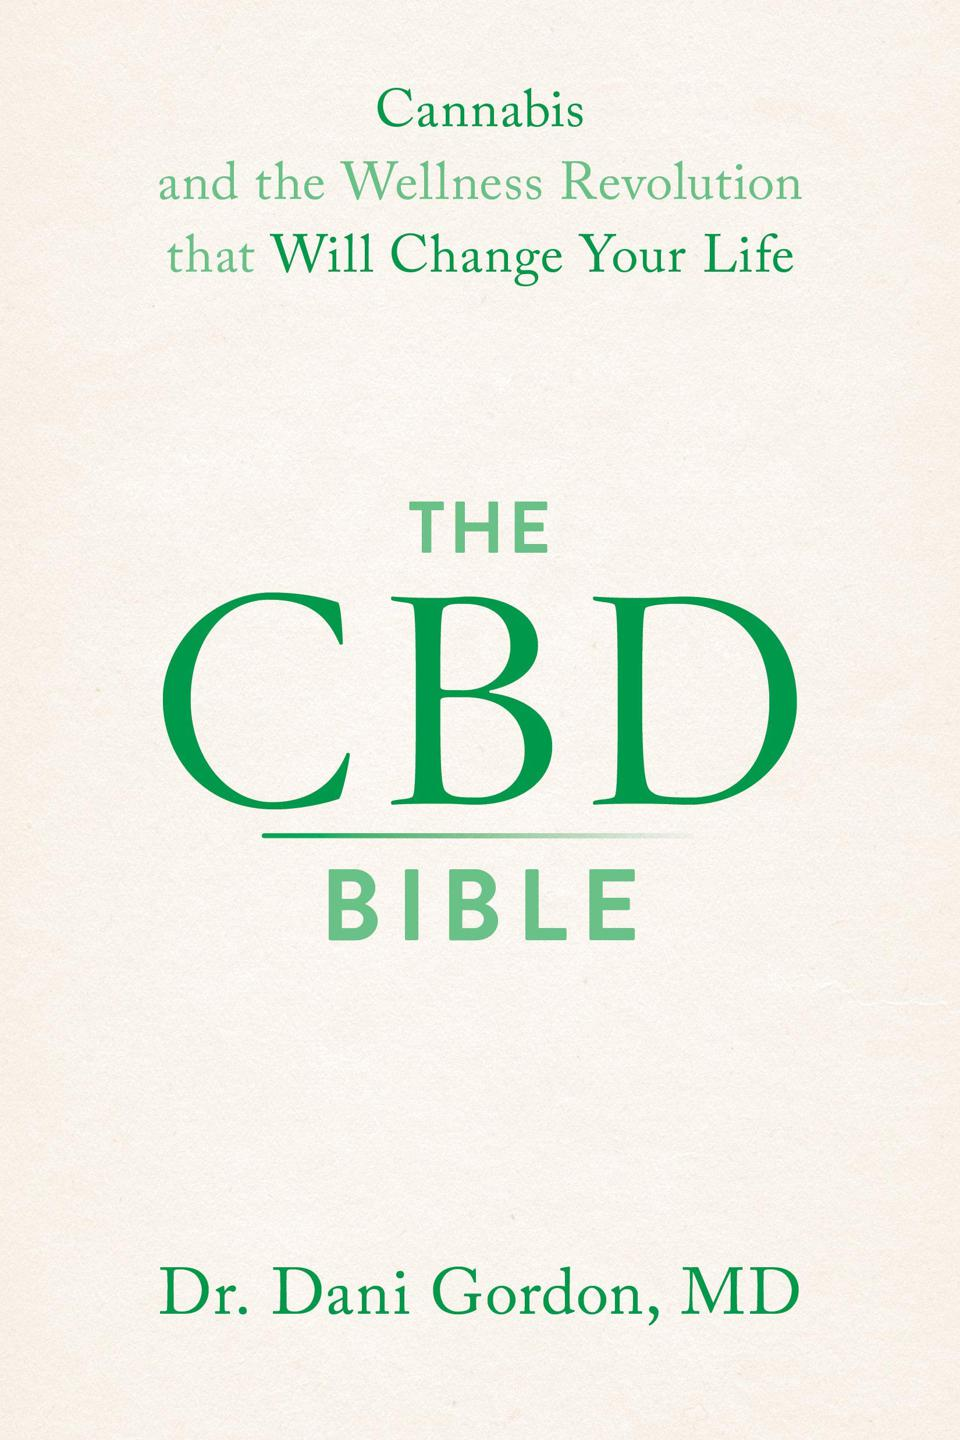 The CBD Bible by Dani Gordon, MD